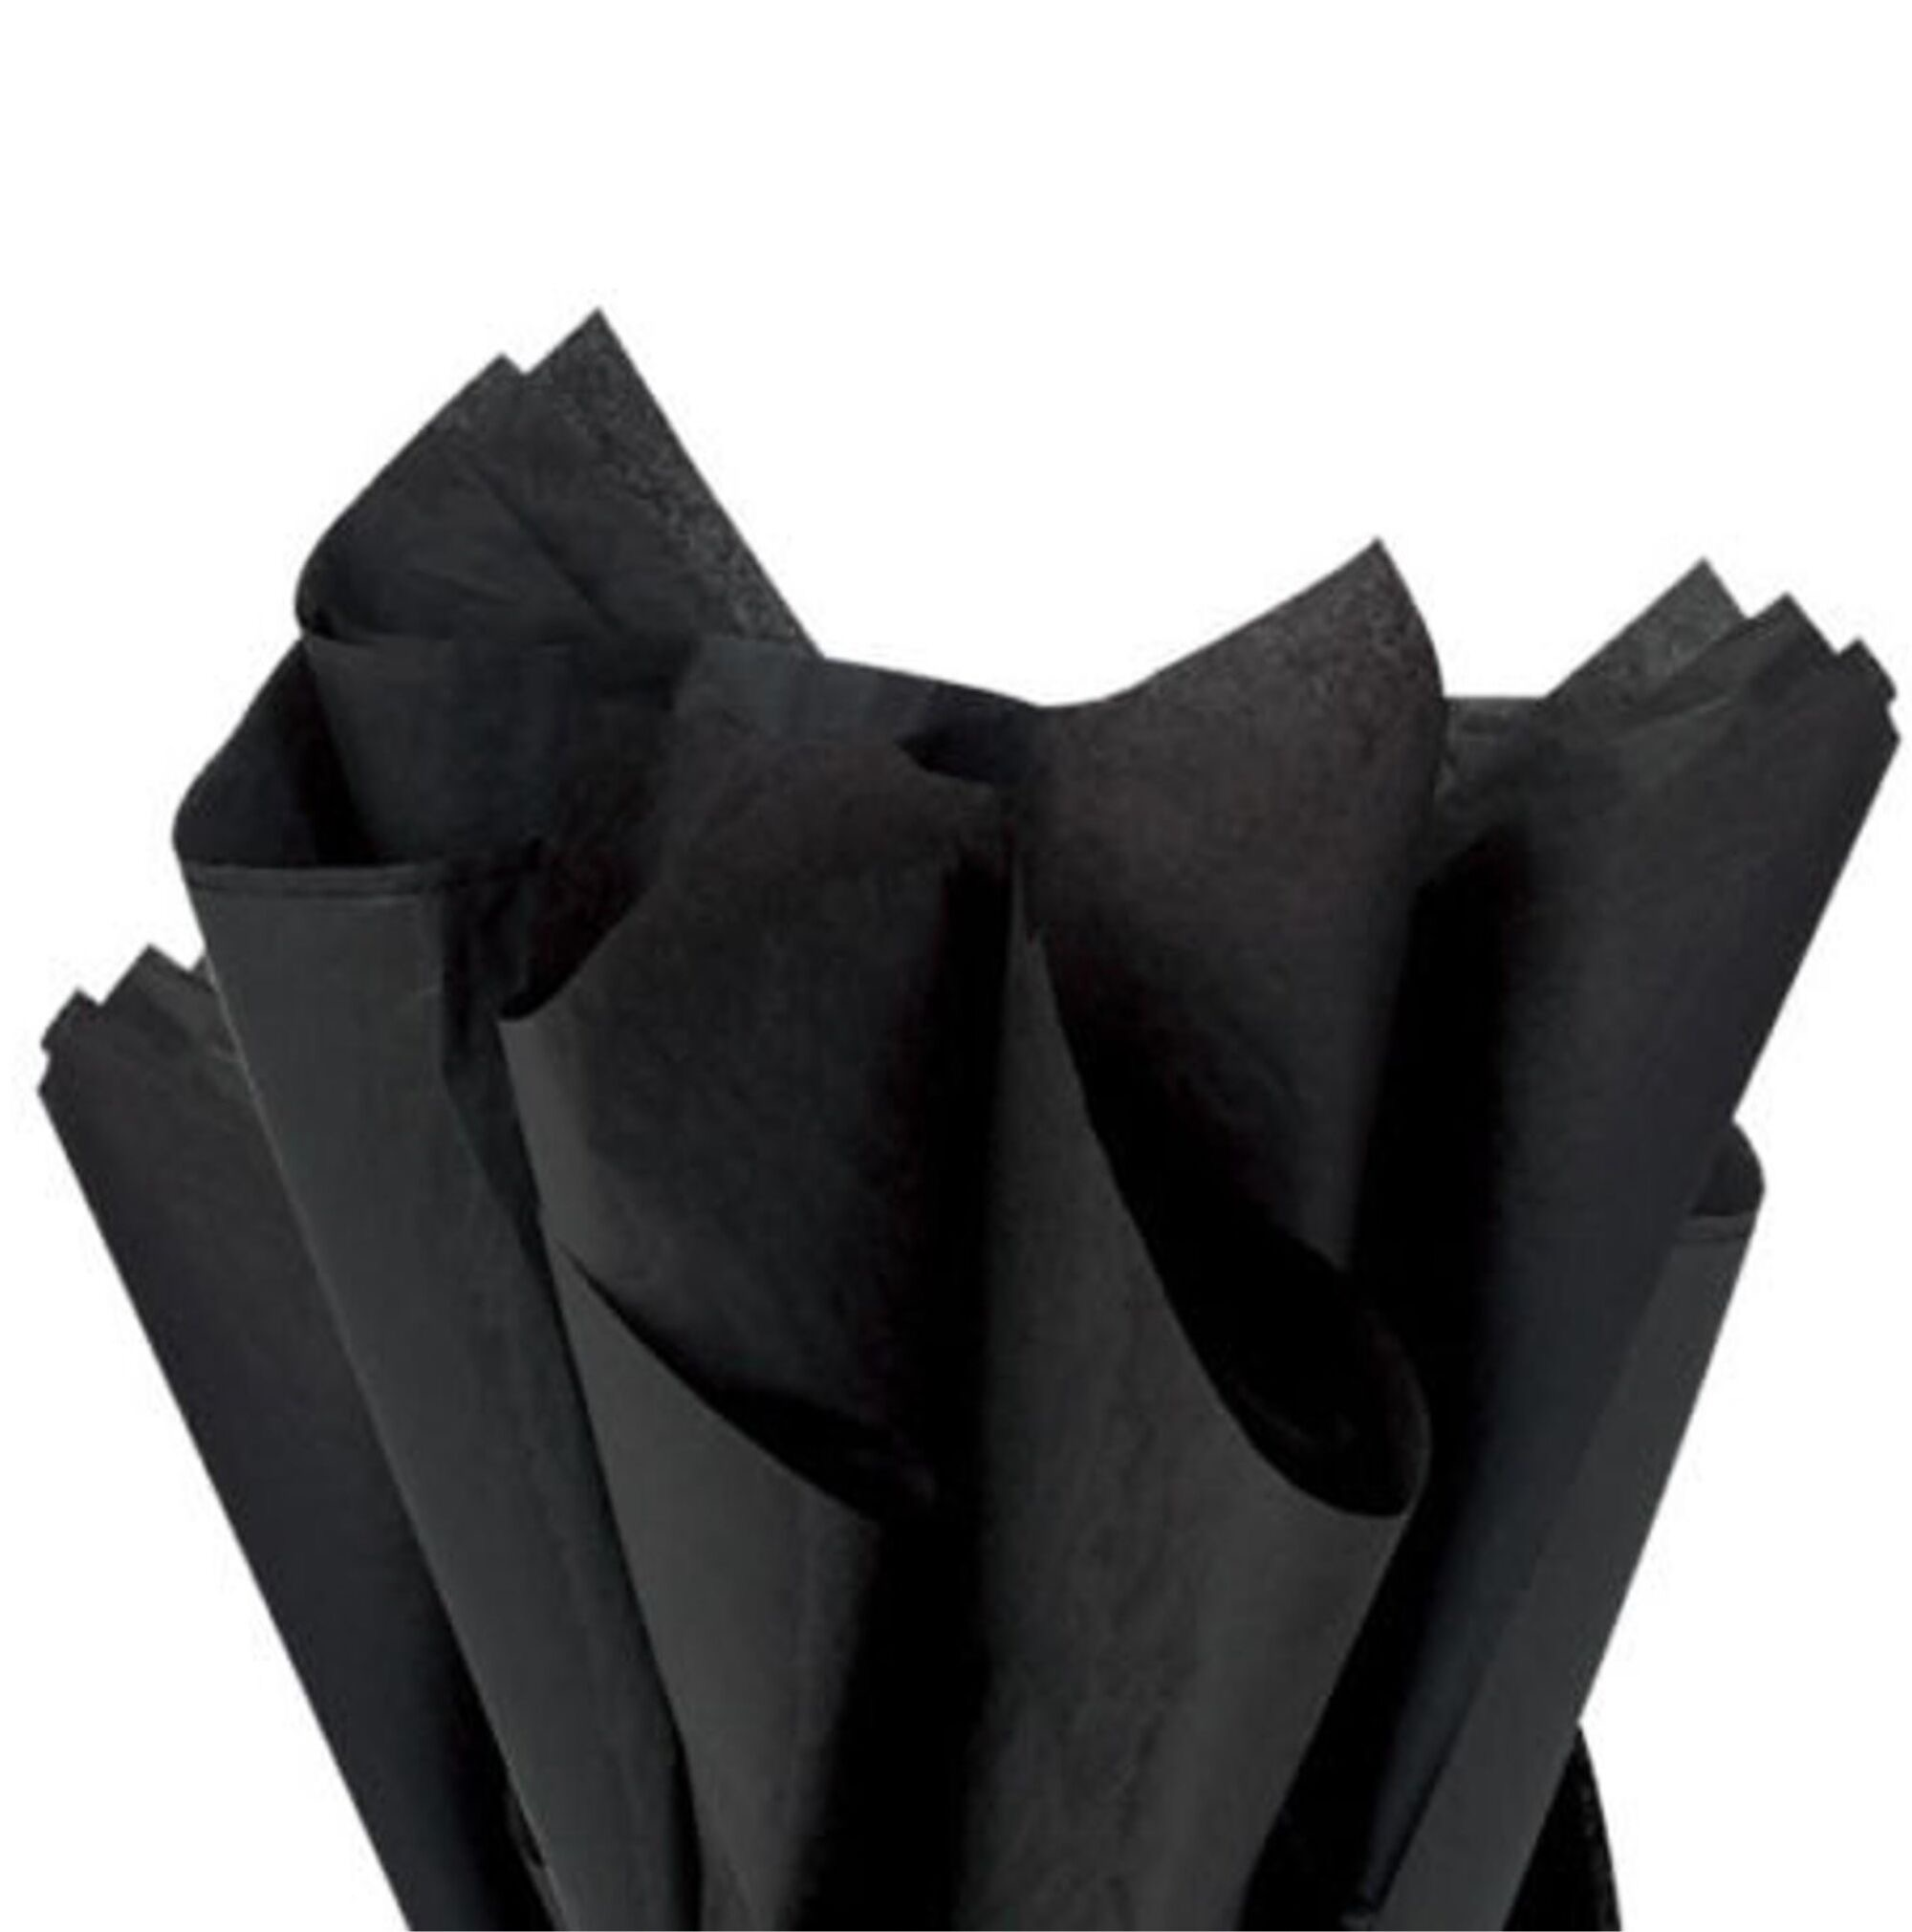 500 Sheets Acid Free Tissue Paper 500x750mm 17gsm Black